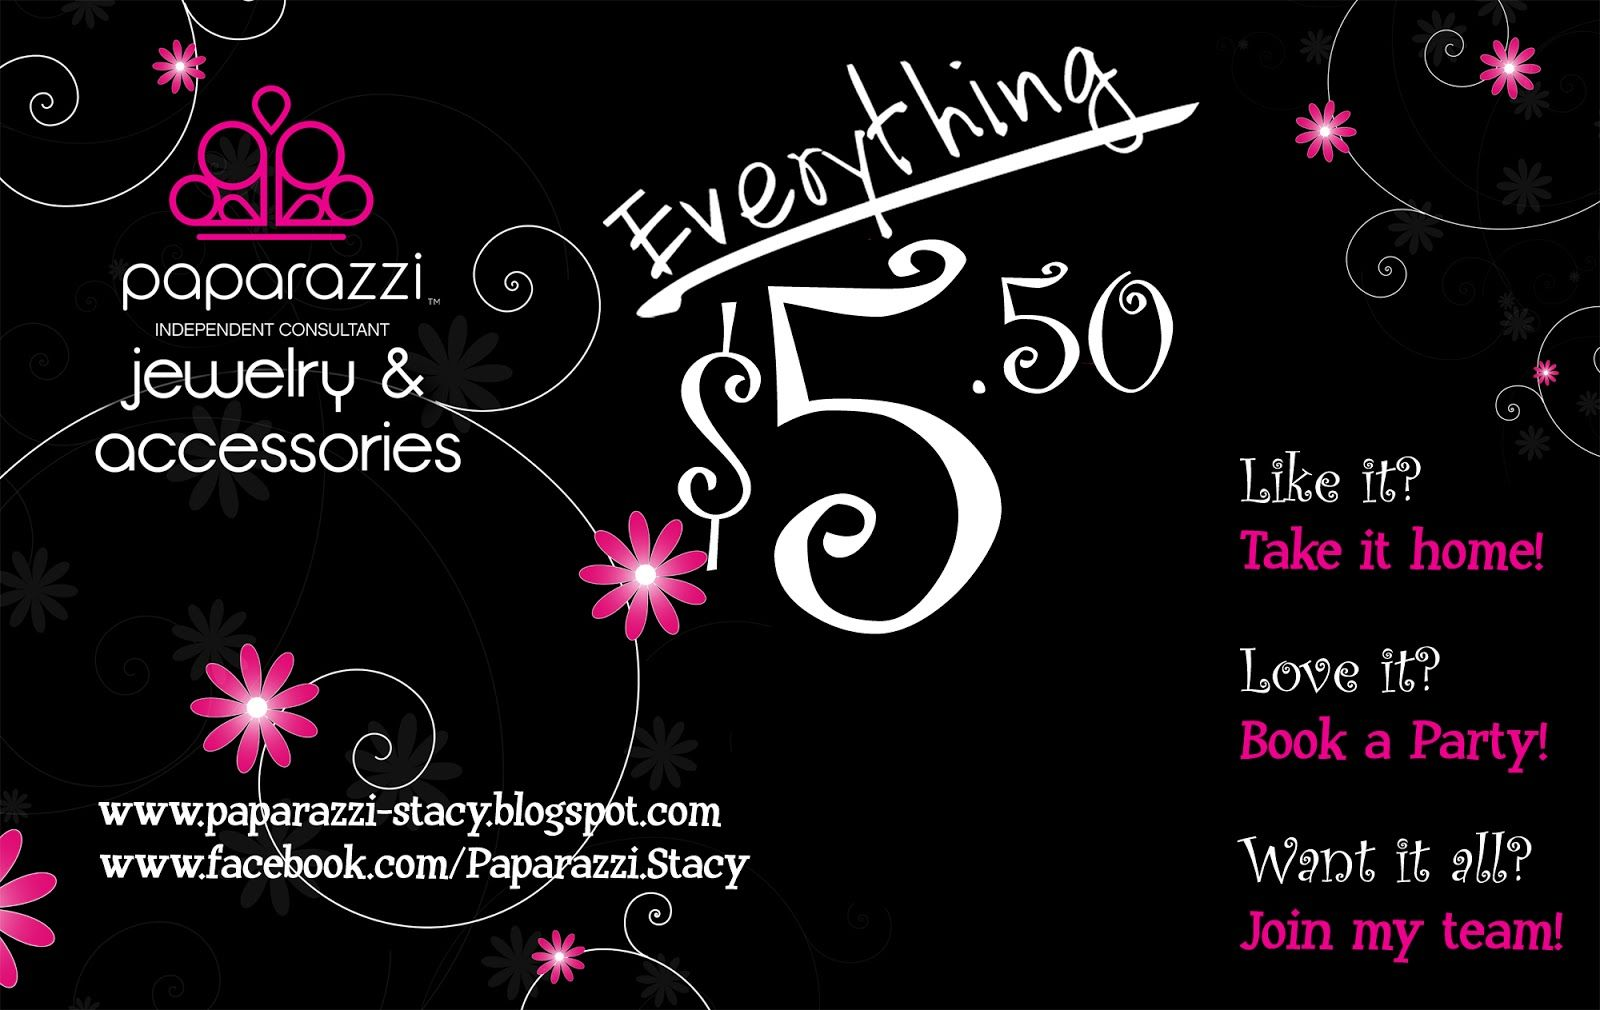 Paparazzi jewelry and accessories by stacy independent consultant paparazzi jewelry and accessories by stacy independent consultant 7522 colourmoves Choice Image